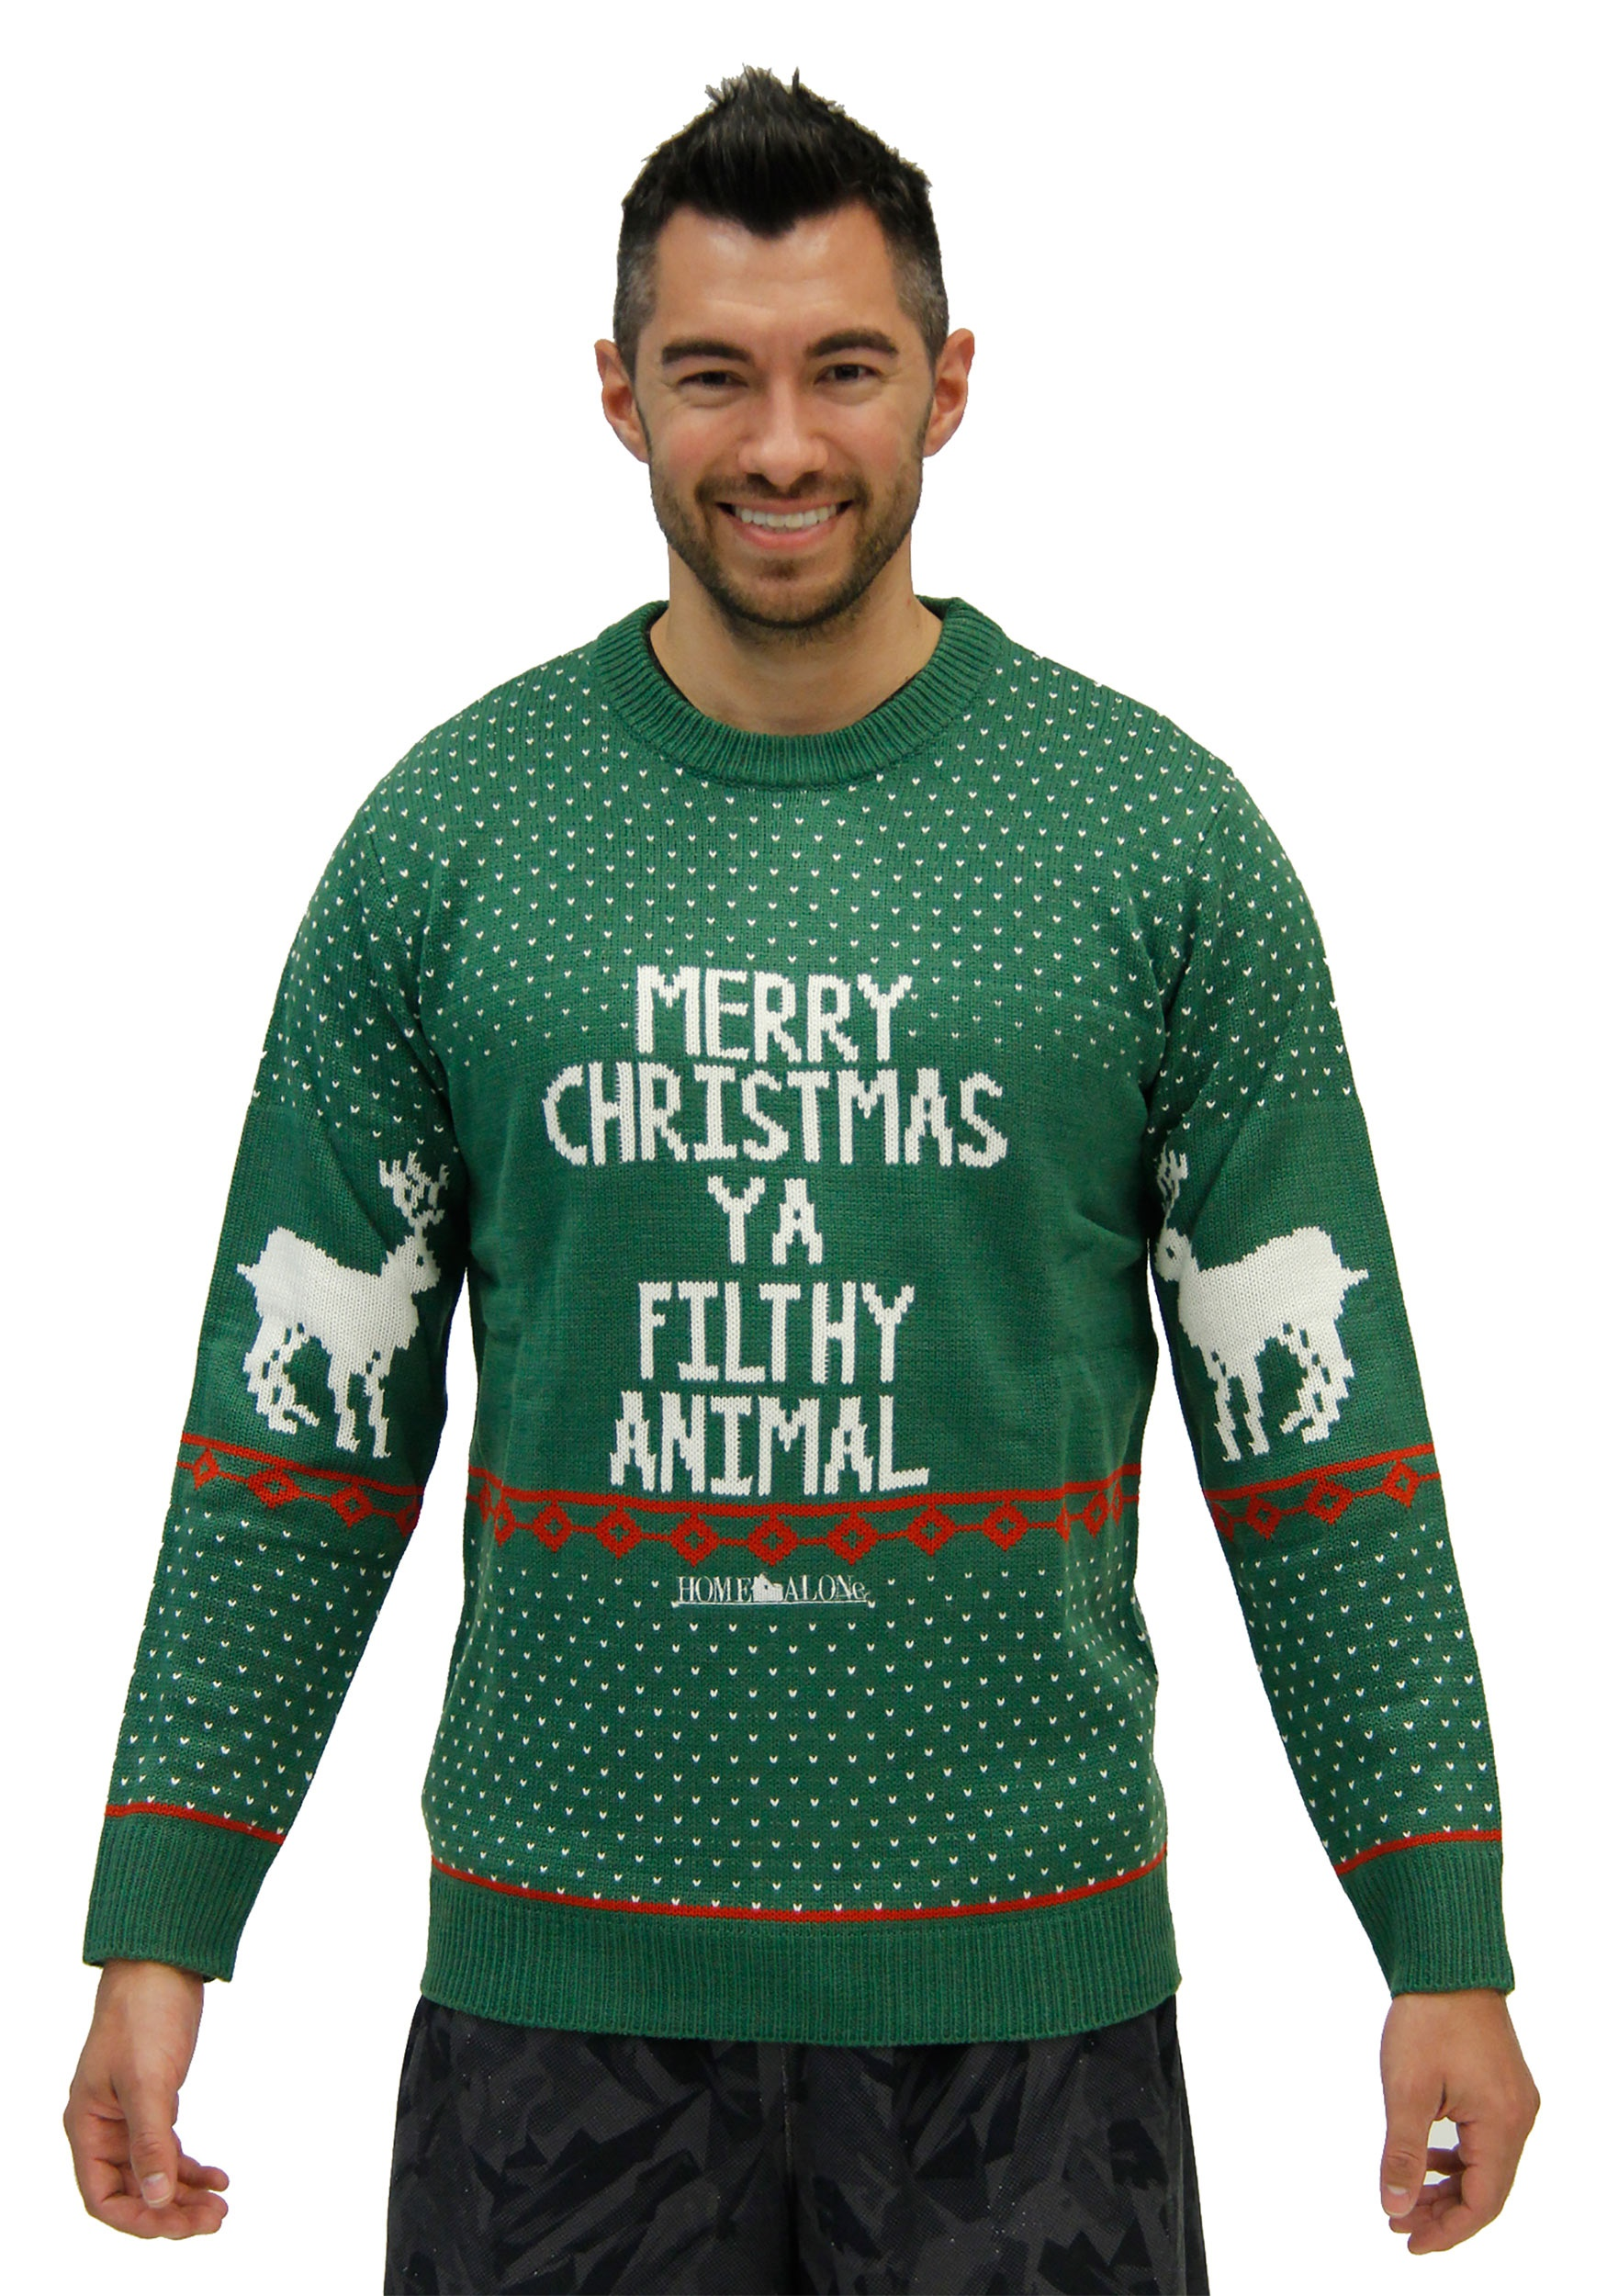 Plus Size Ugly Christmas Sweater.Home Alone Ya Filthy Animal Plus Size Ugly Xmas Sweater